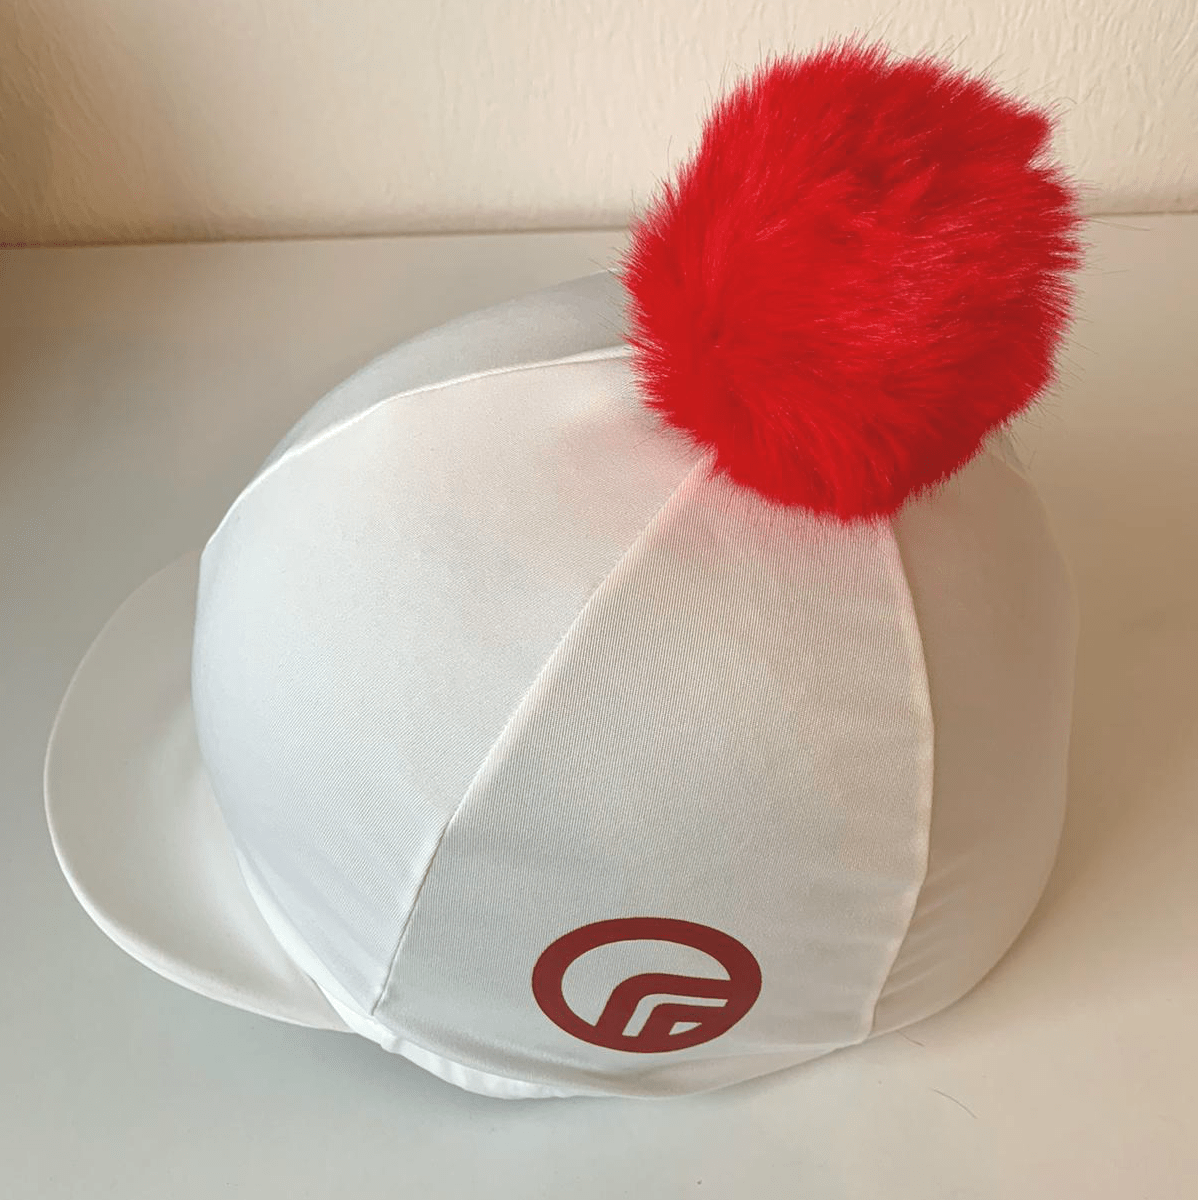 https://www.fomoprotection.com/wp-content/uploads/2019/11/Hat-Silk-New.png